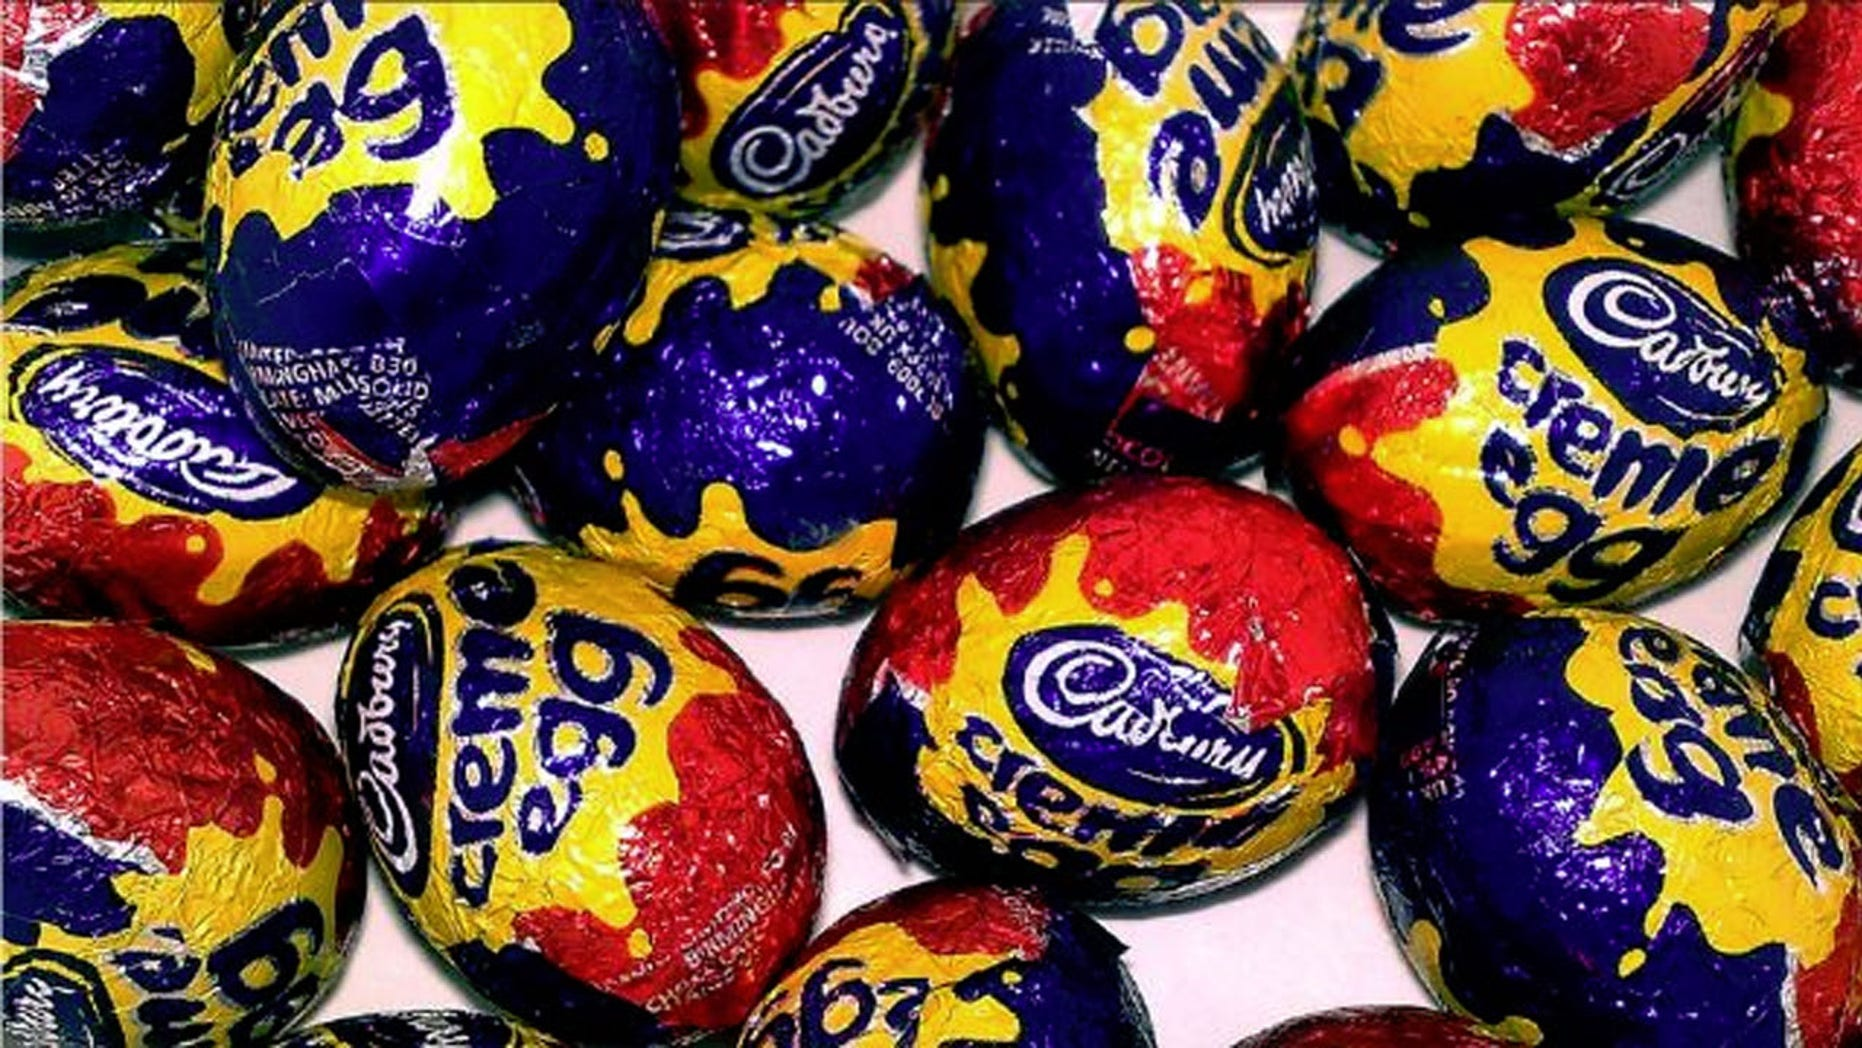 Cadbury Creme Egg craze is a thing, but why? | Fox News